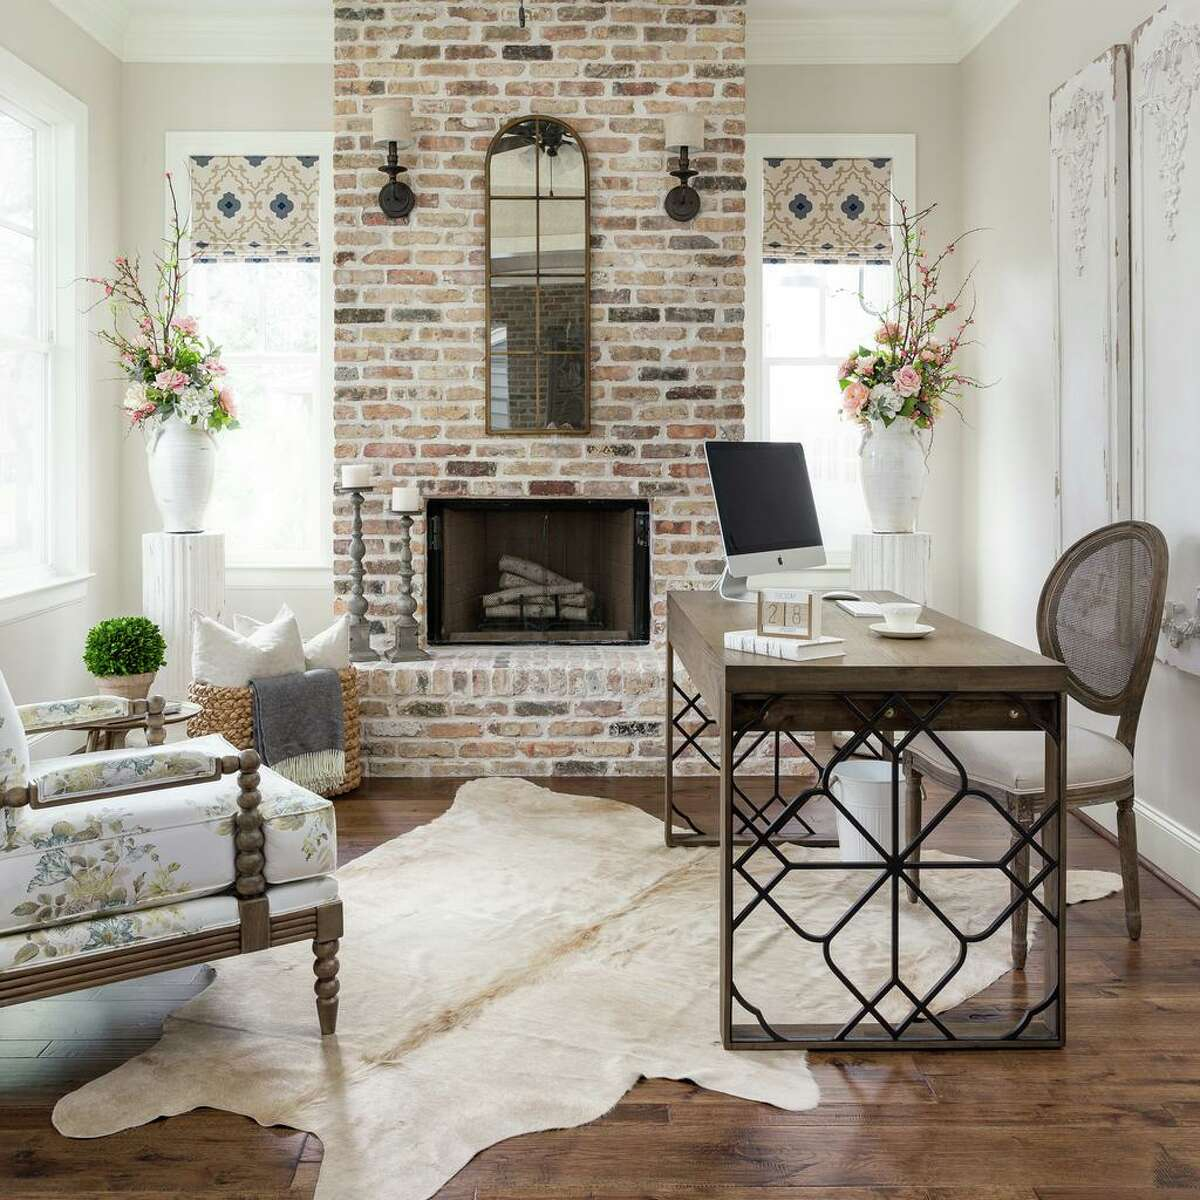 Interior designer Nikole Starr transformed this empty room into an at-home office.